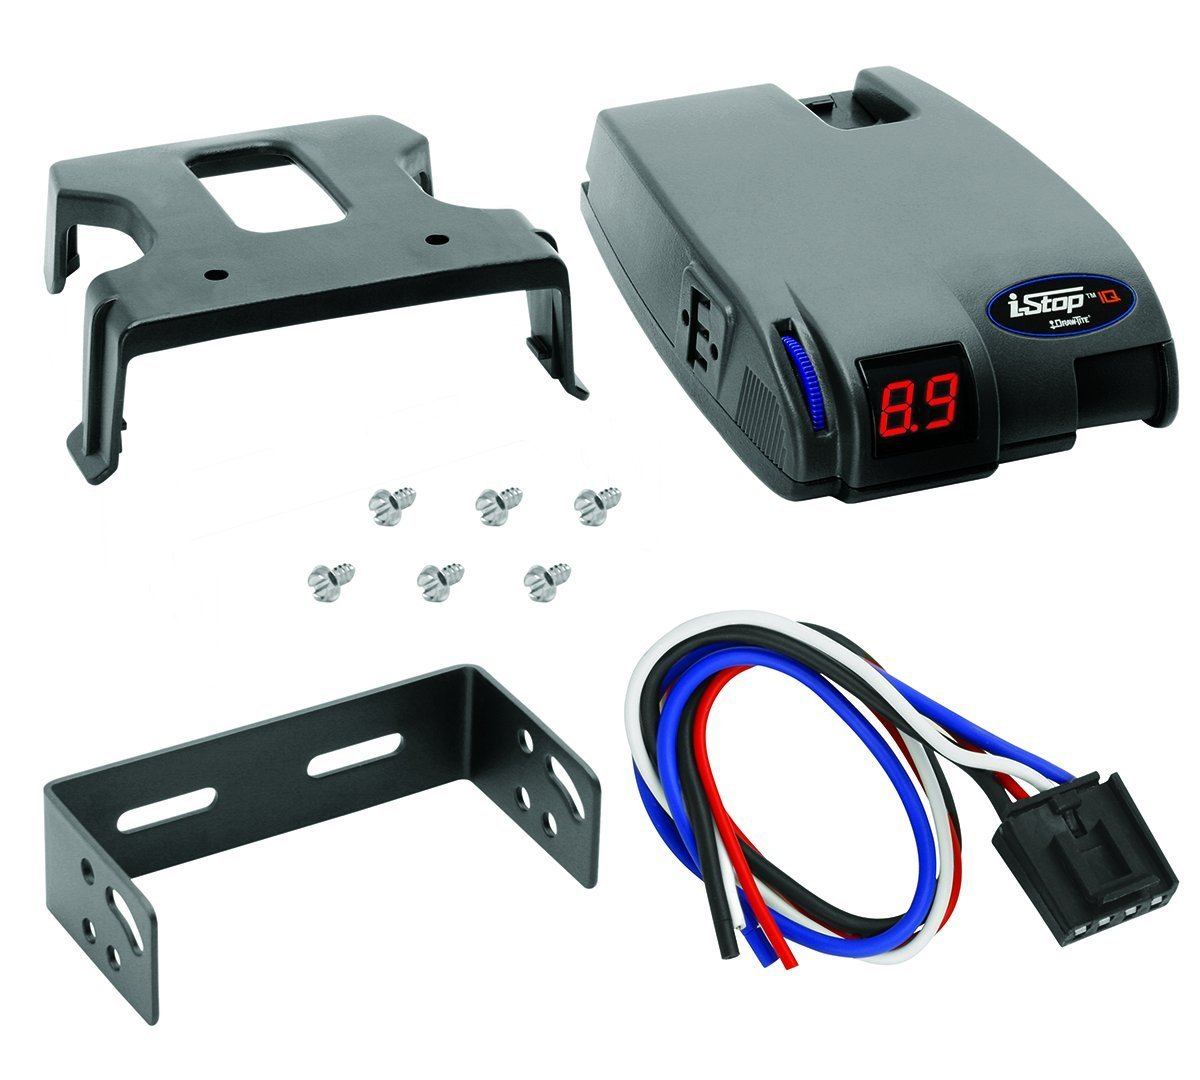 Top 10 Trailer Brake Controller Reviews — Making Sure You Choose the Best of 2020